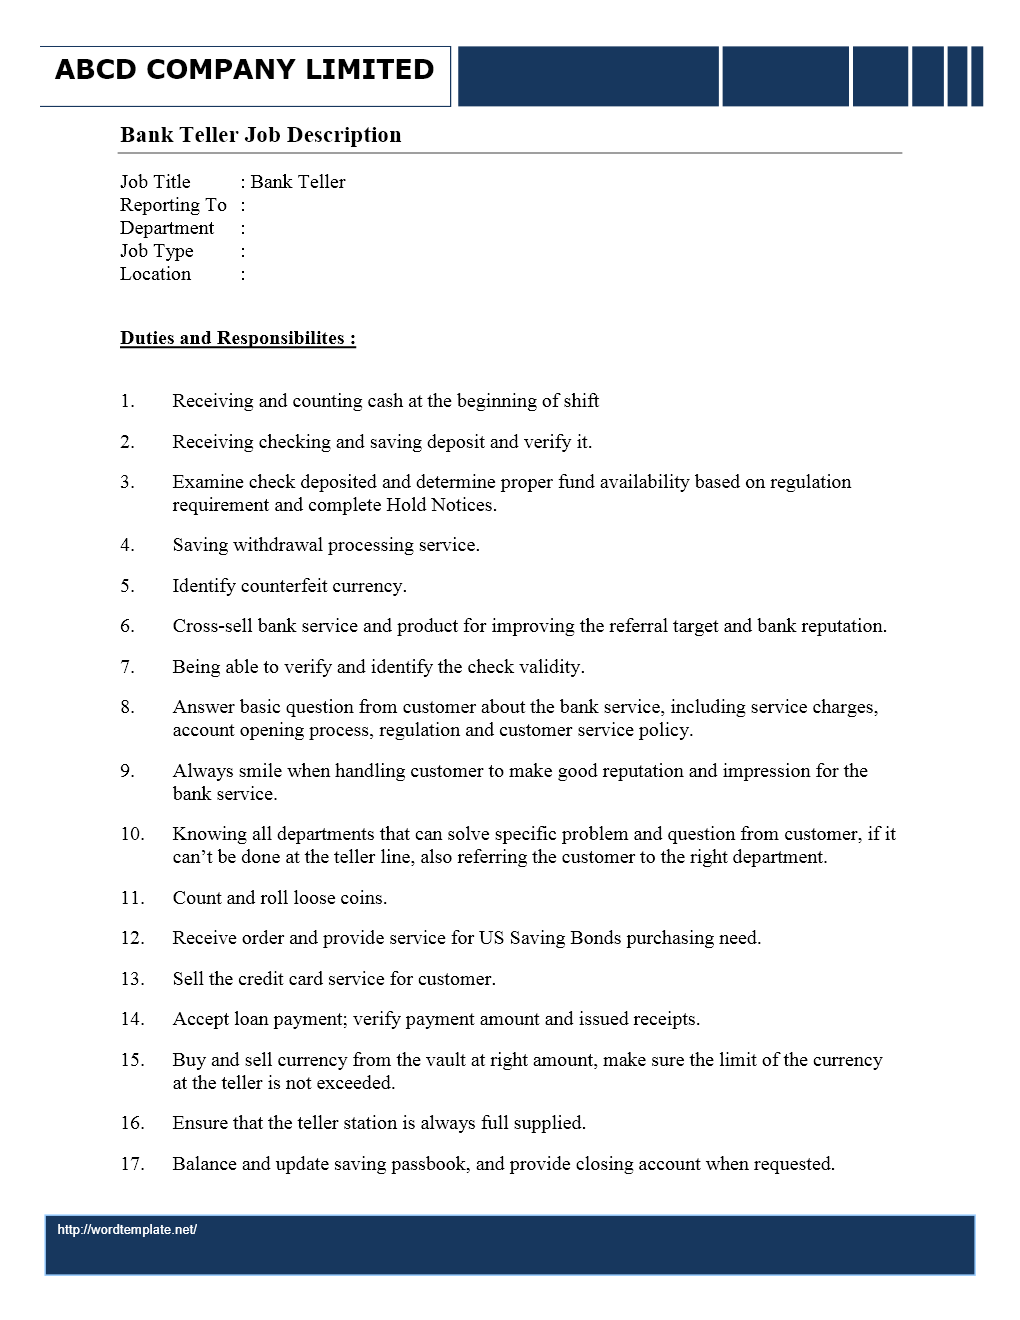 bank teller job description wordtemplates net job description bank teller